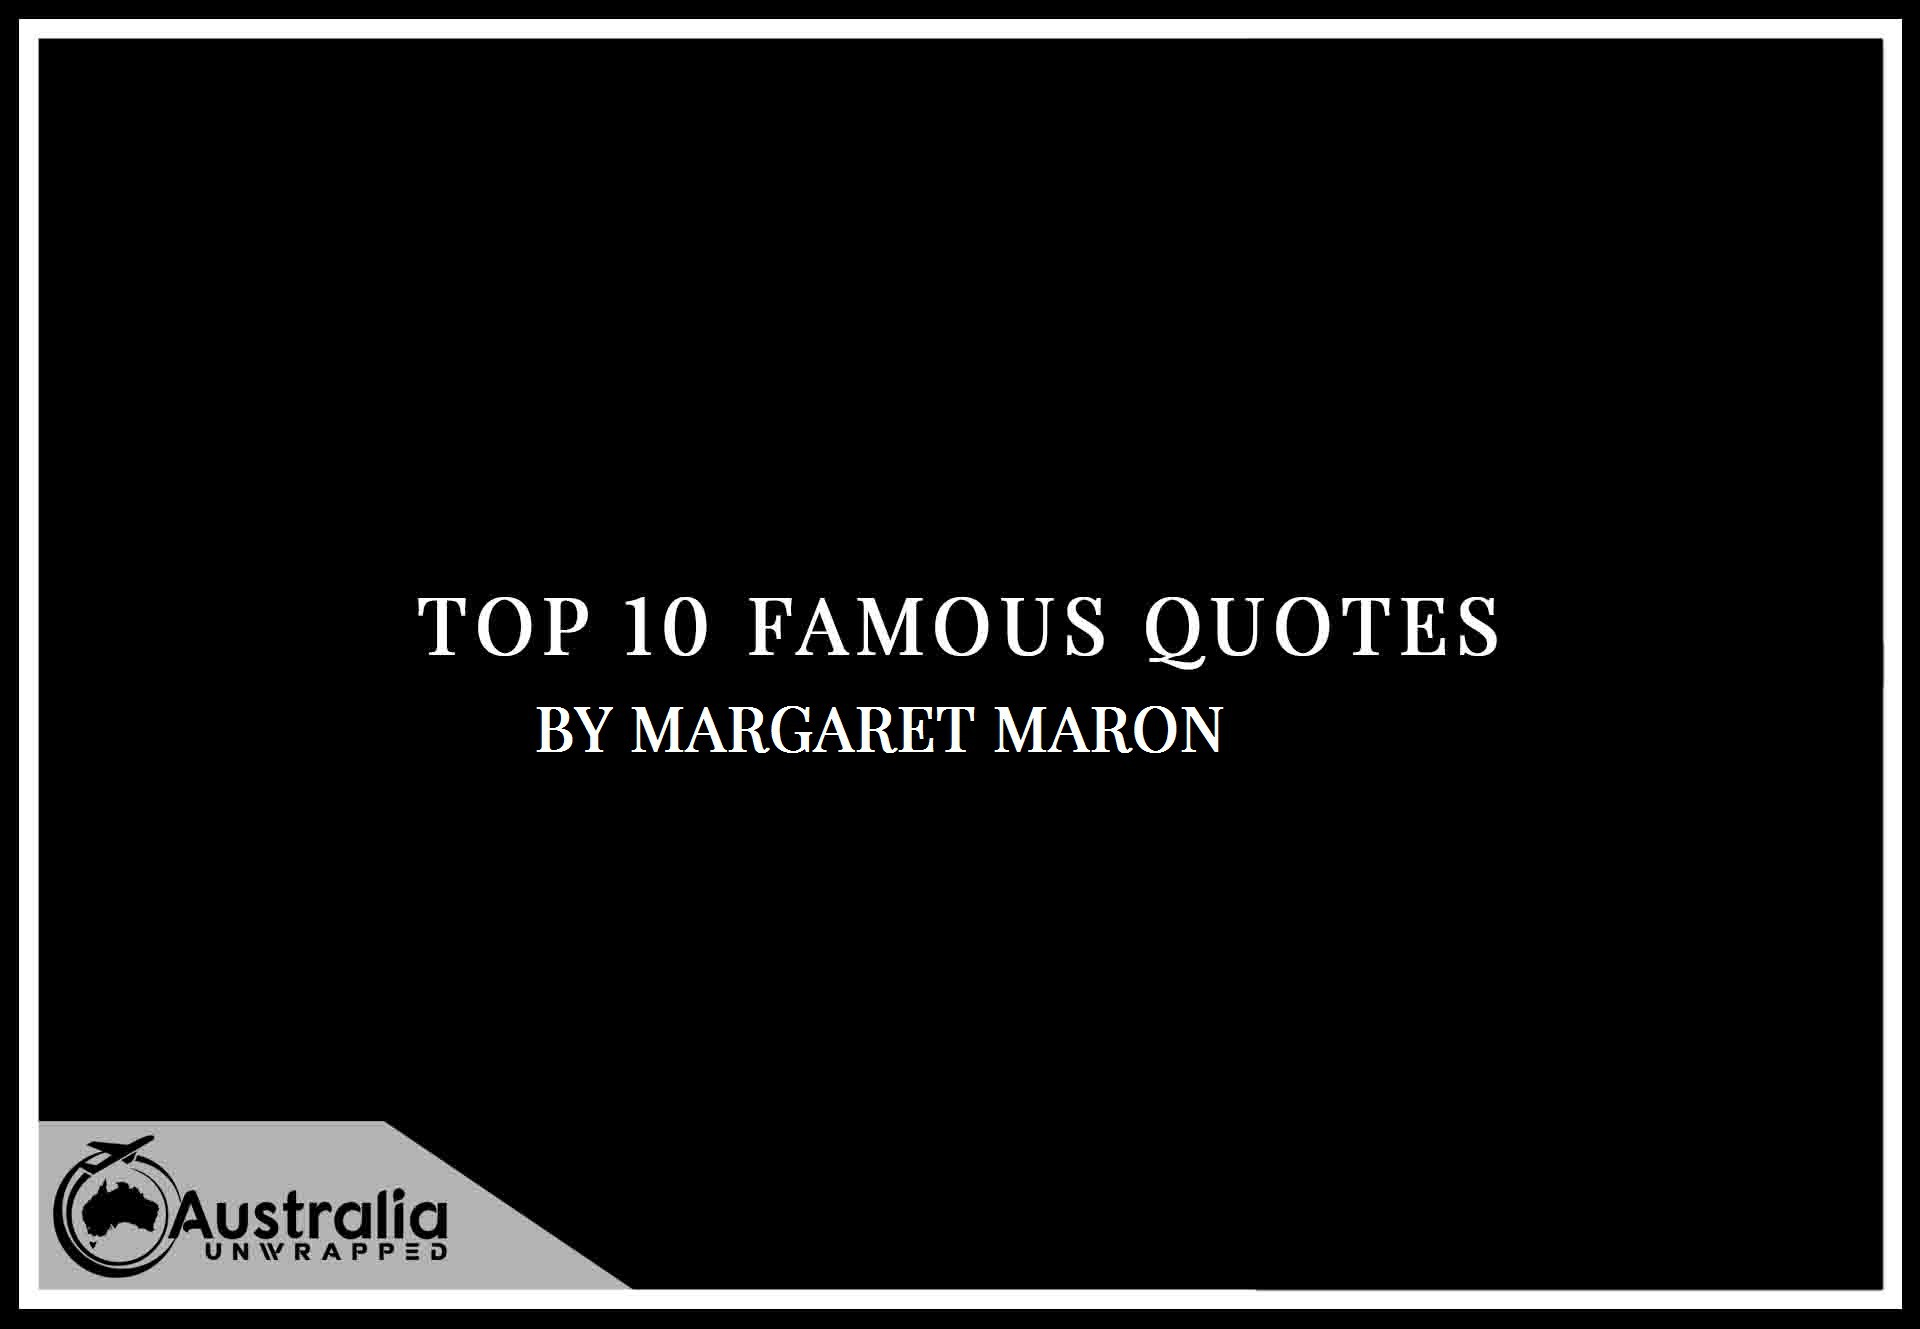 Margaret Maron's Top 10 Popular and Famous Quotes